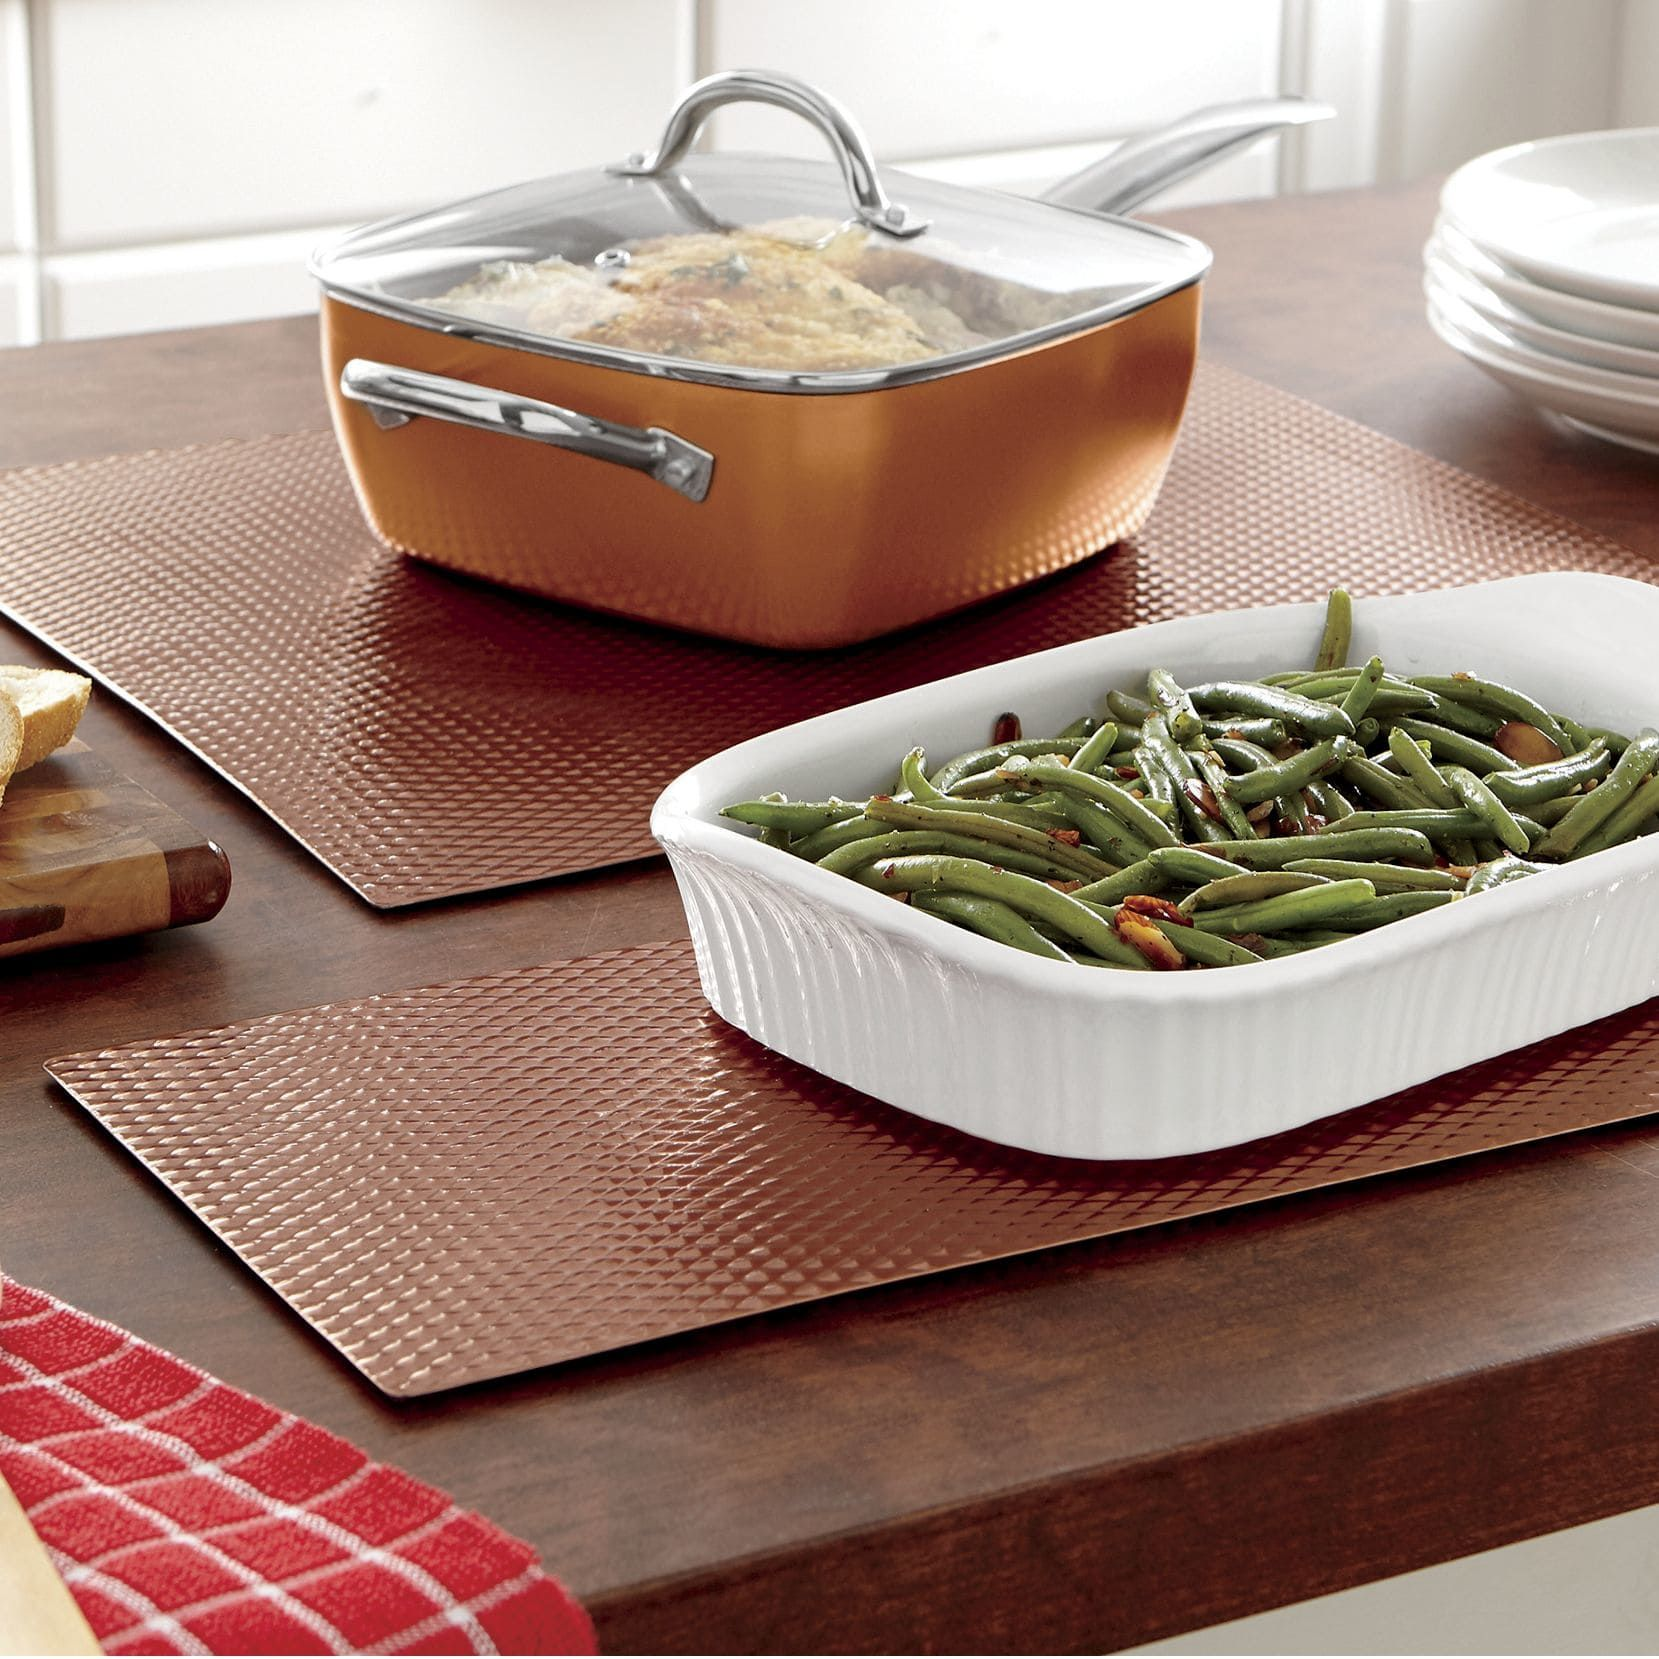 Pin By Leslie Stevens On Oxford 2 Counter Serving Dishes Kitchen Tools And Gadgets